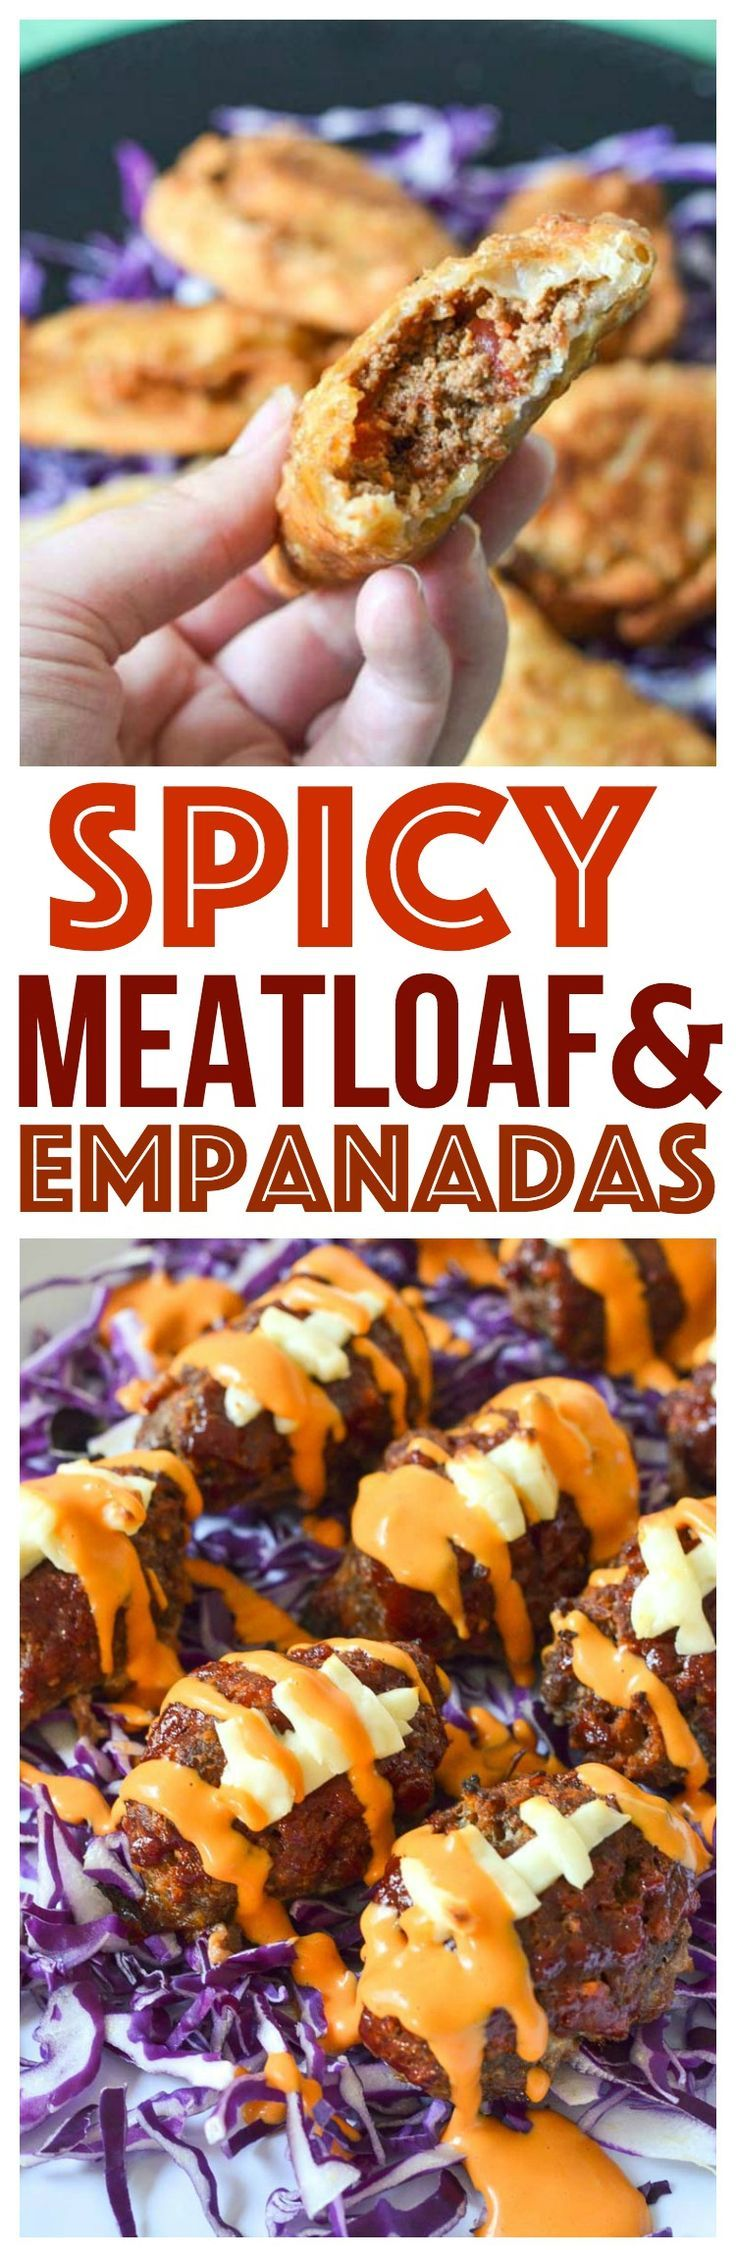 simple spicy meatloaf recipes easy game day appetizers football shaped food easy empanadas recipe party food ideas quick and easy meals via @CourtneysSweets